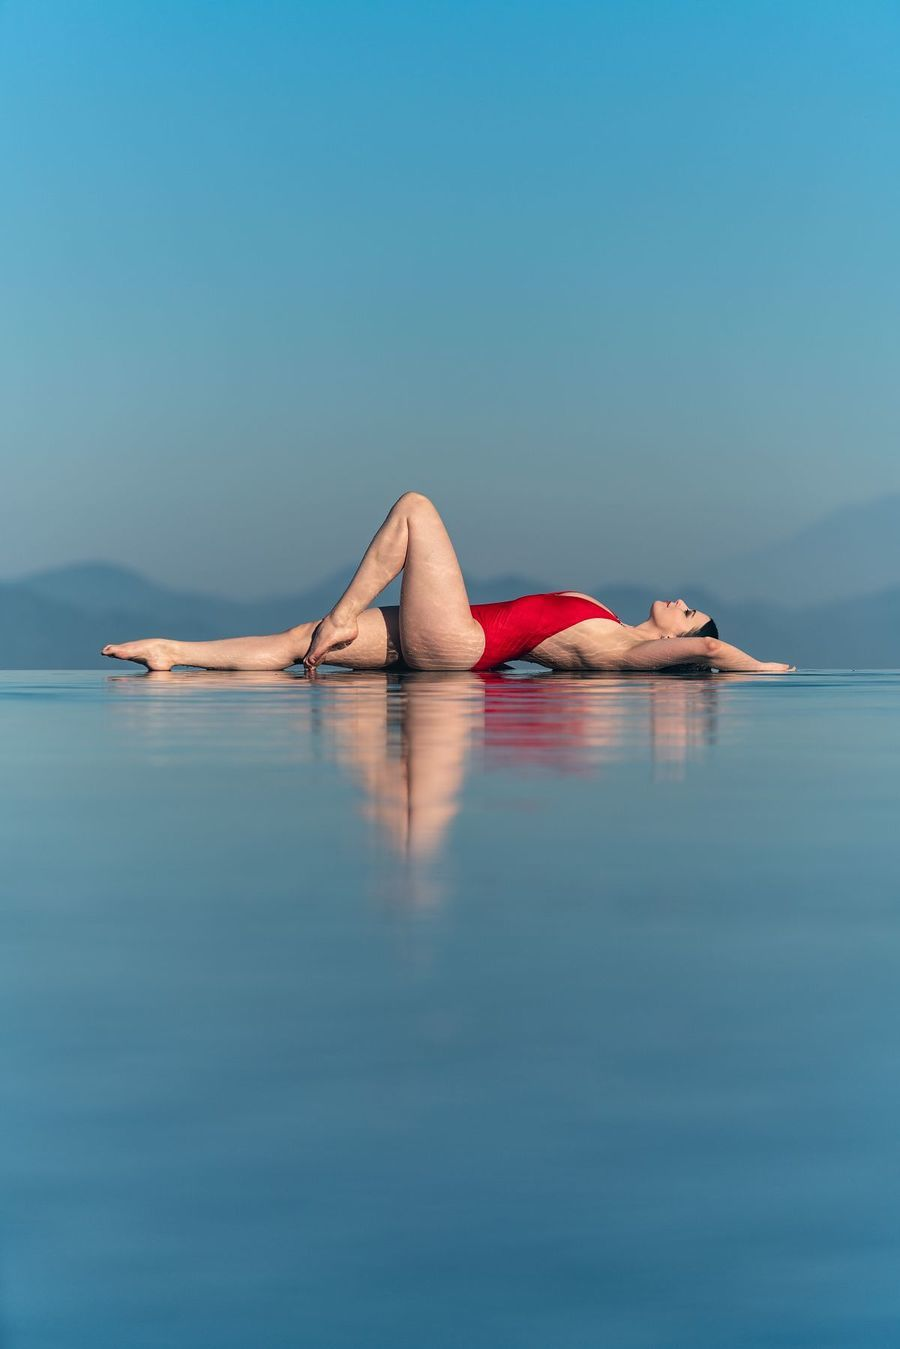 Life's reflections- Bali. / Photography by Roger123456, Model Helen Diaz, Makeup by Helen Diaz, Stylist Helen Diaz / Uploaded 22nd May 2018 @ 08:28 AM